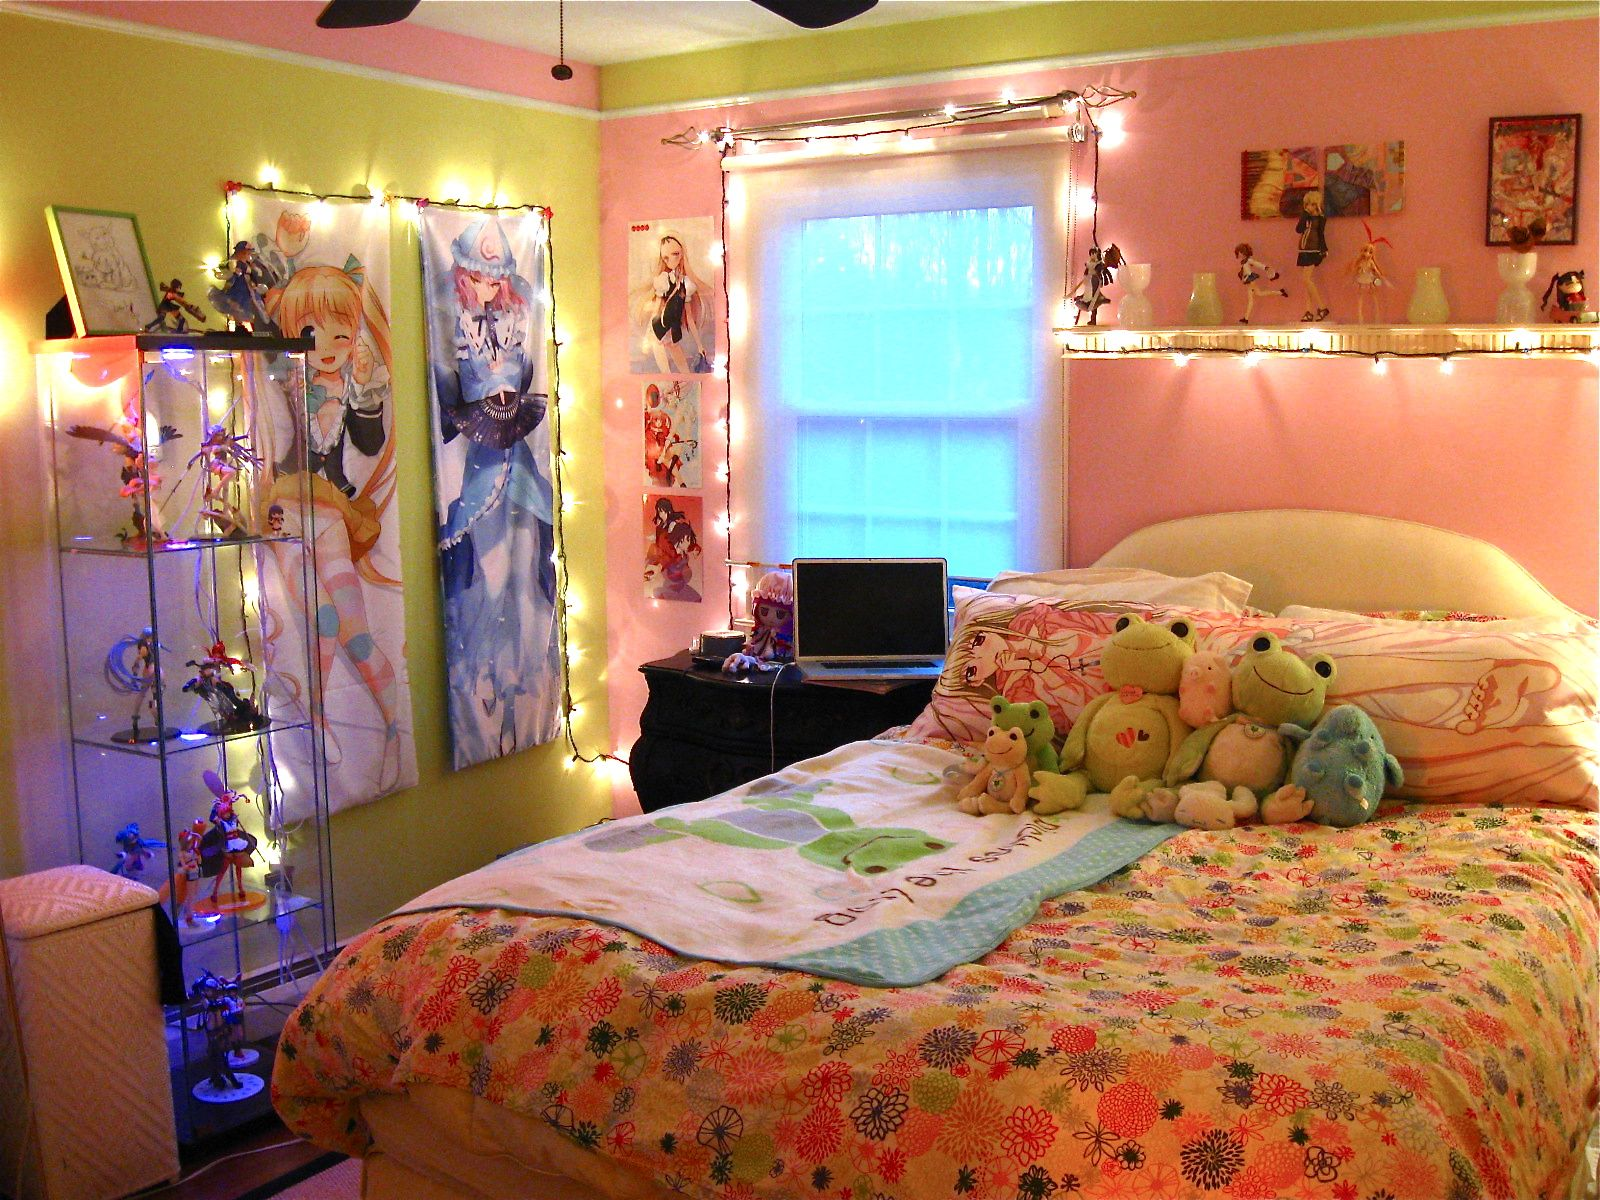 Japan Bedroom Decor Girly Anime Room I Like It But I Think I Can Do Better